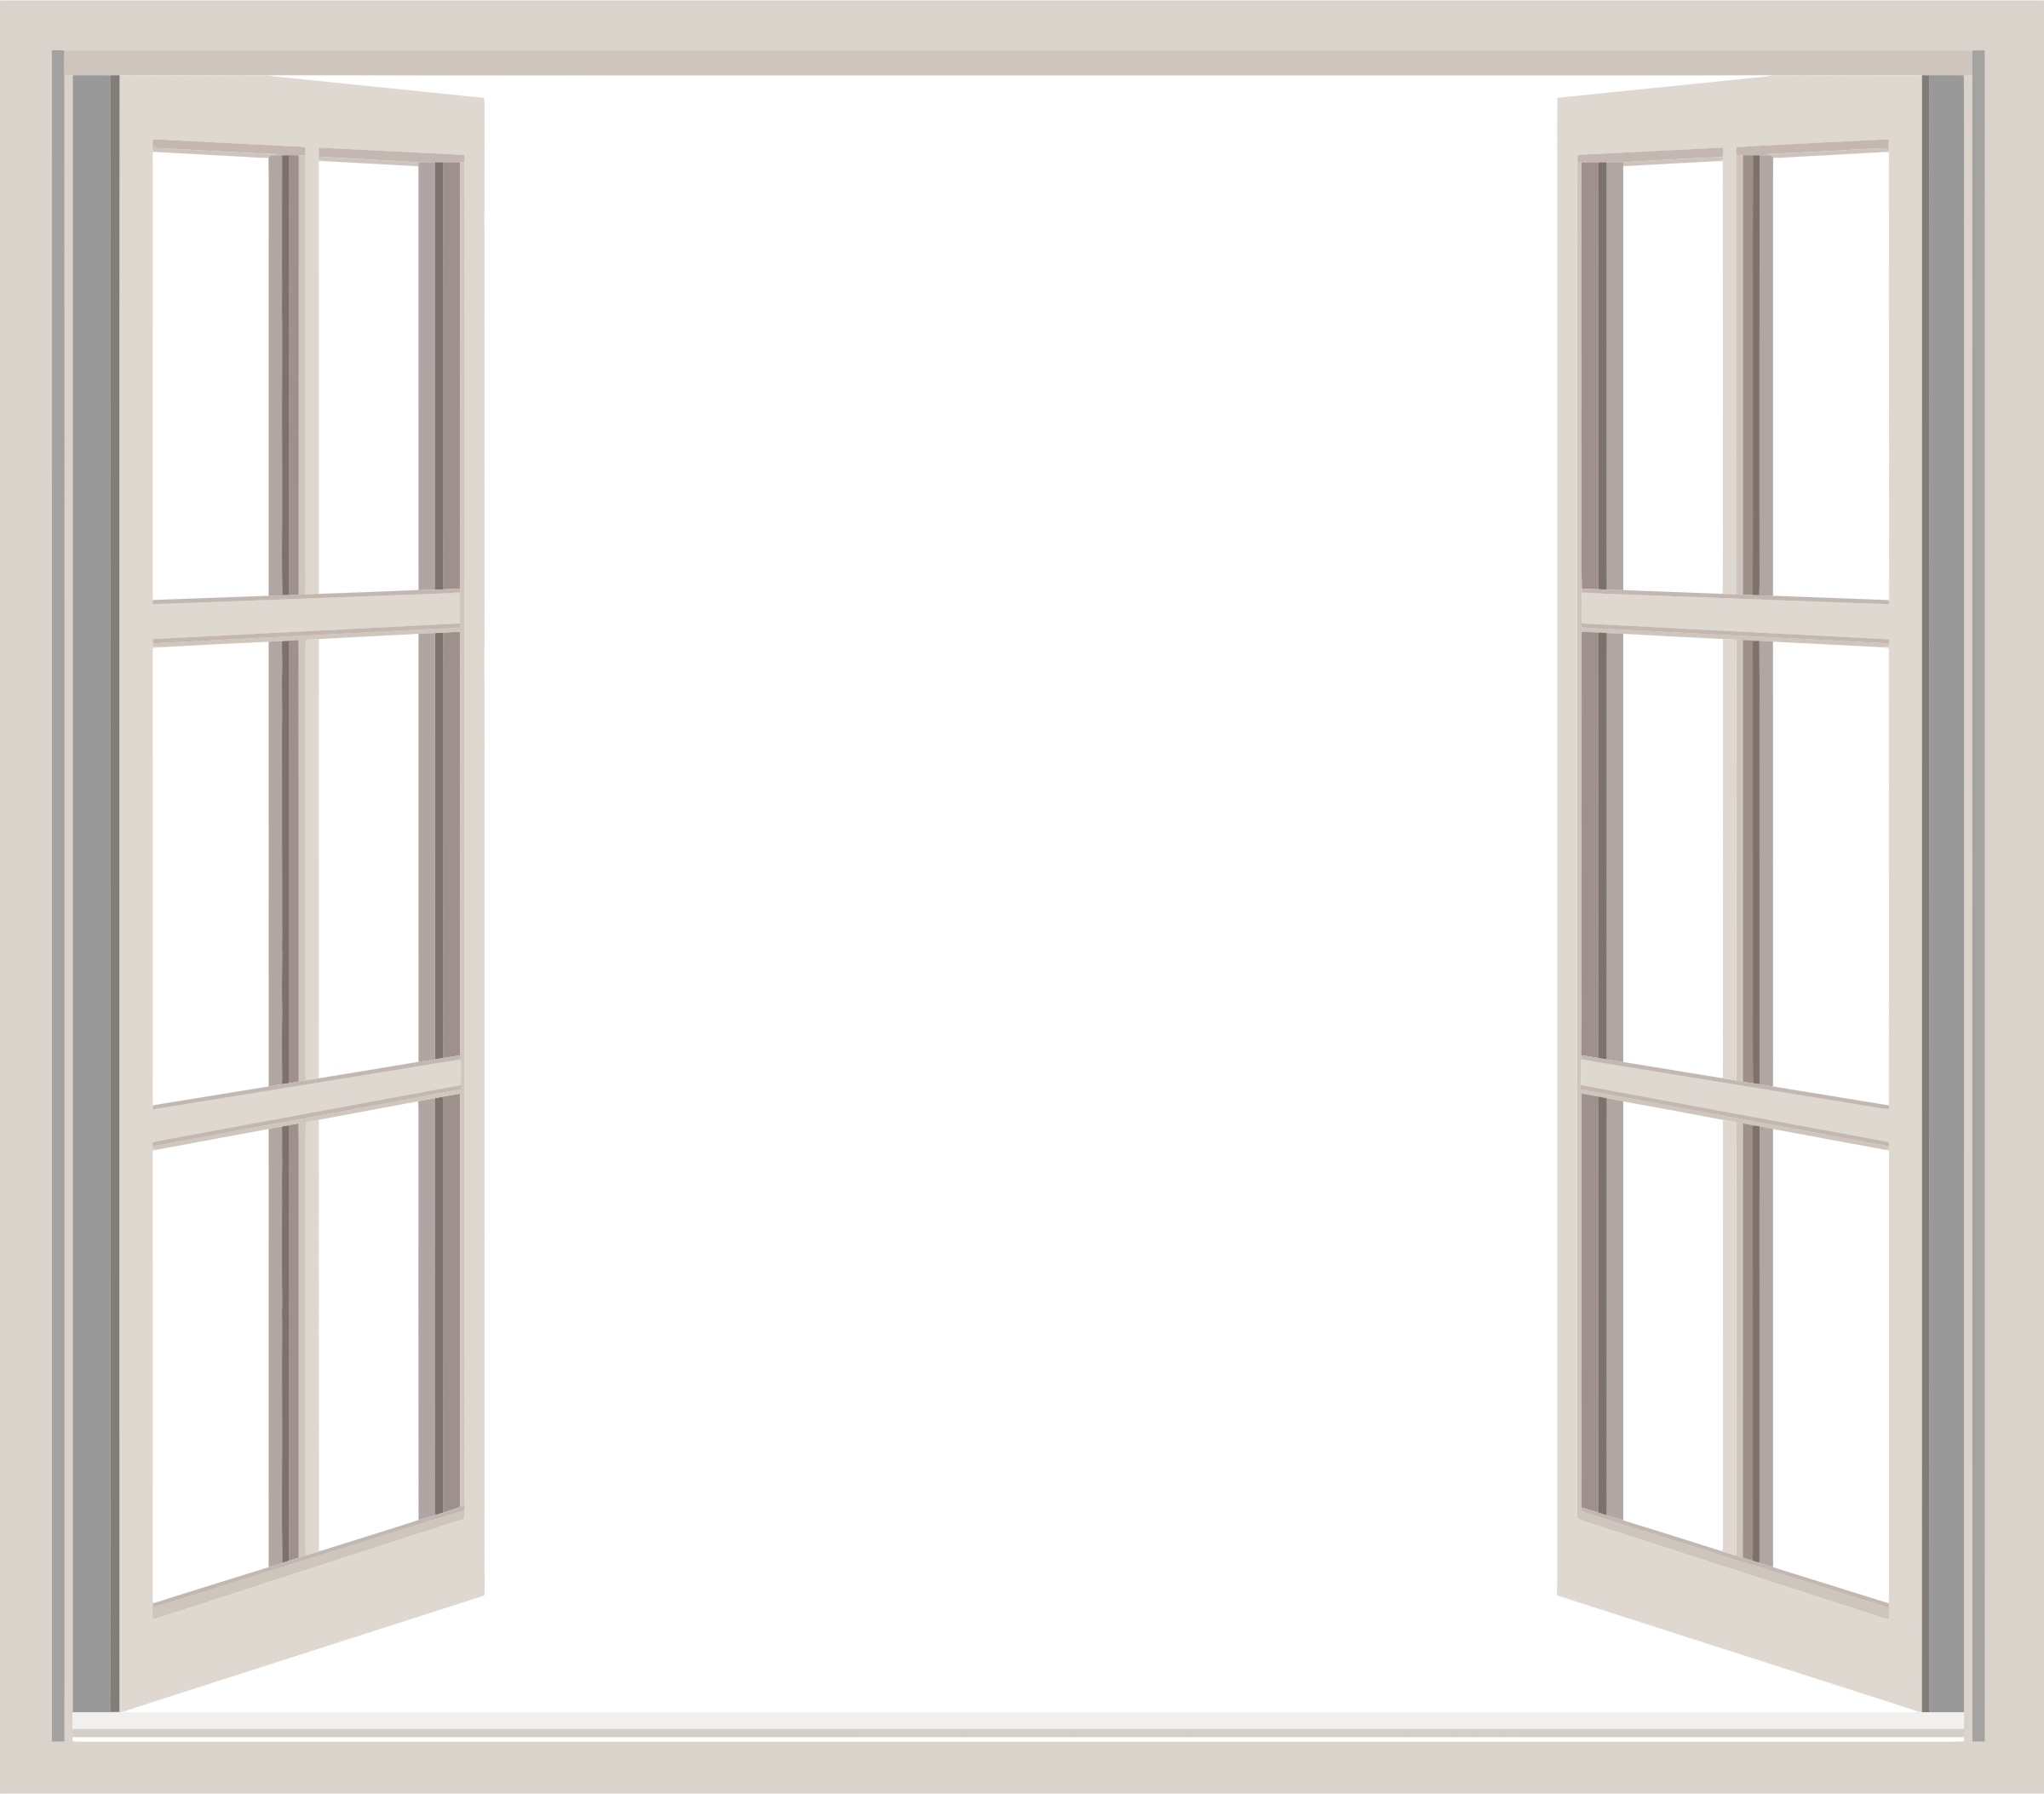 House craft printables windows and door clipart banner library library House craft printables windows and door clipart - ClipartFest banner library library